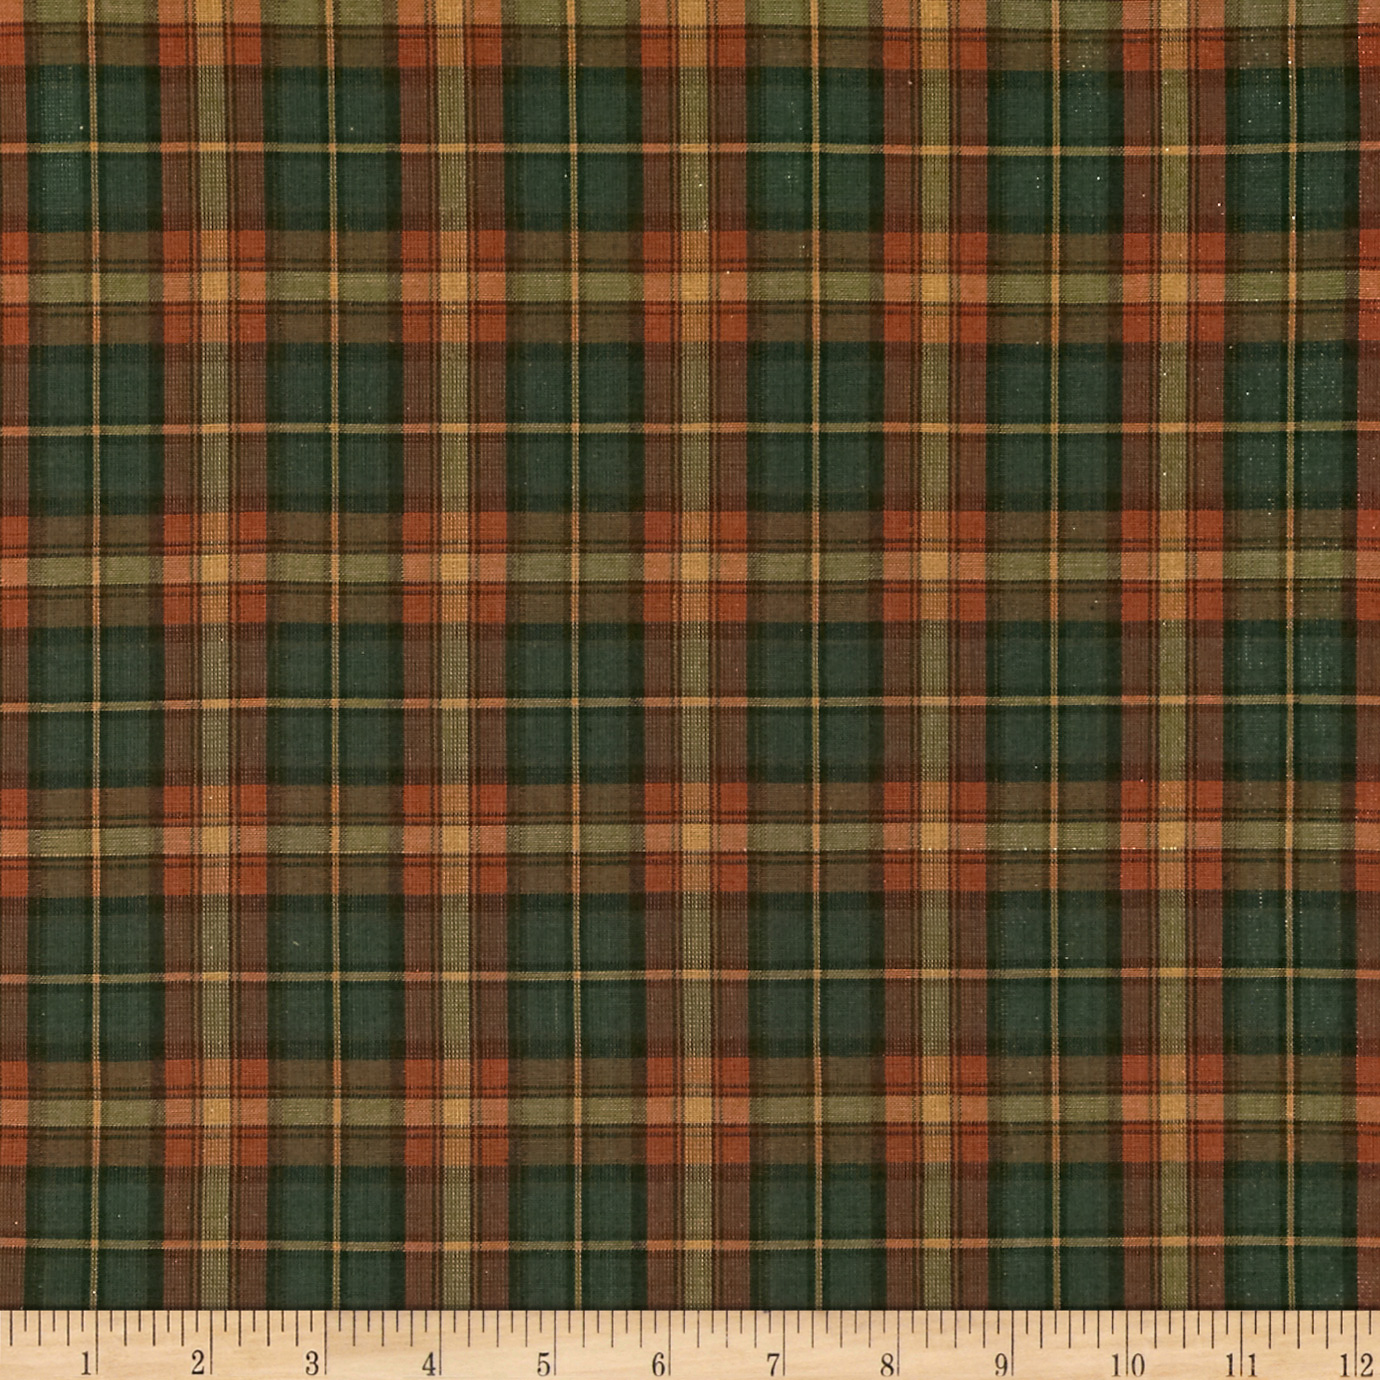 Holiday Blitz Large Plaid Green/Orange Fabric